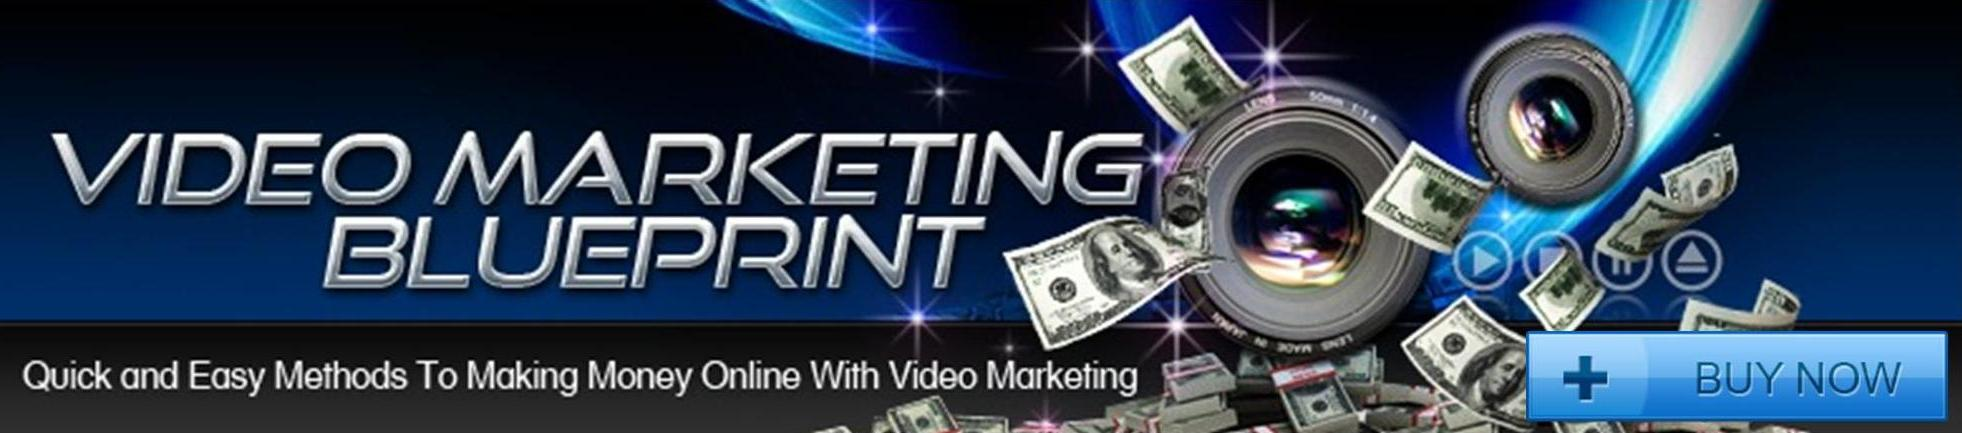 For your Video Marketing needs stick to a Blue Print